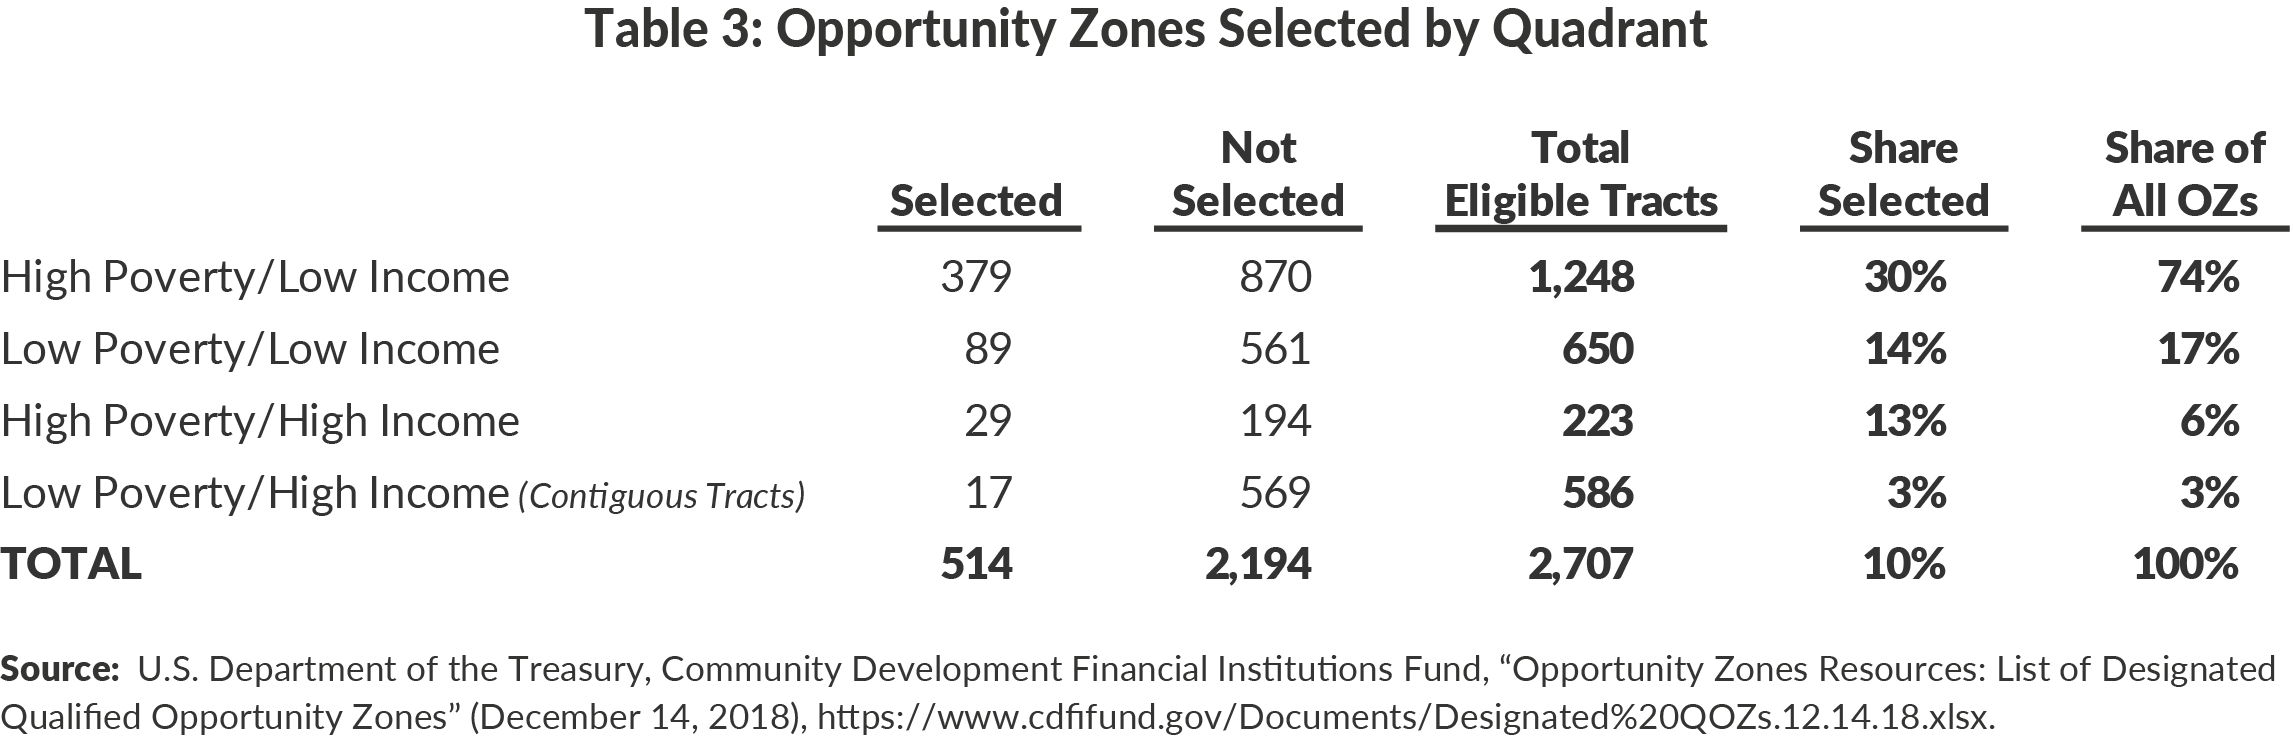 Table 3. Opportunity Zones Selected by Quadrant